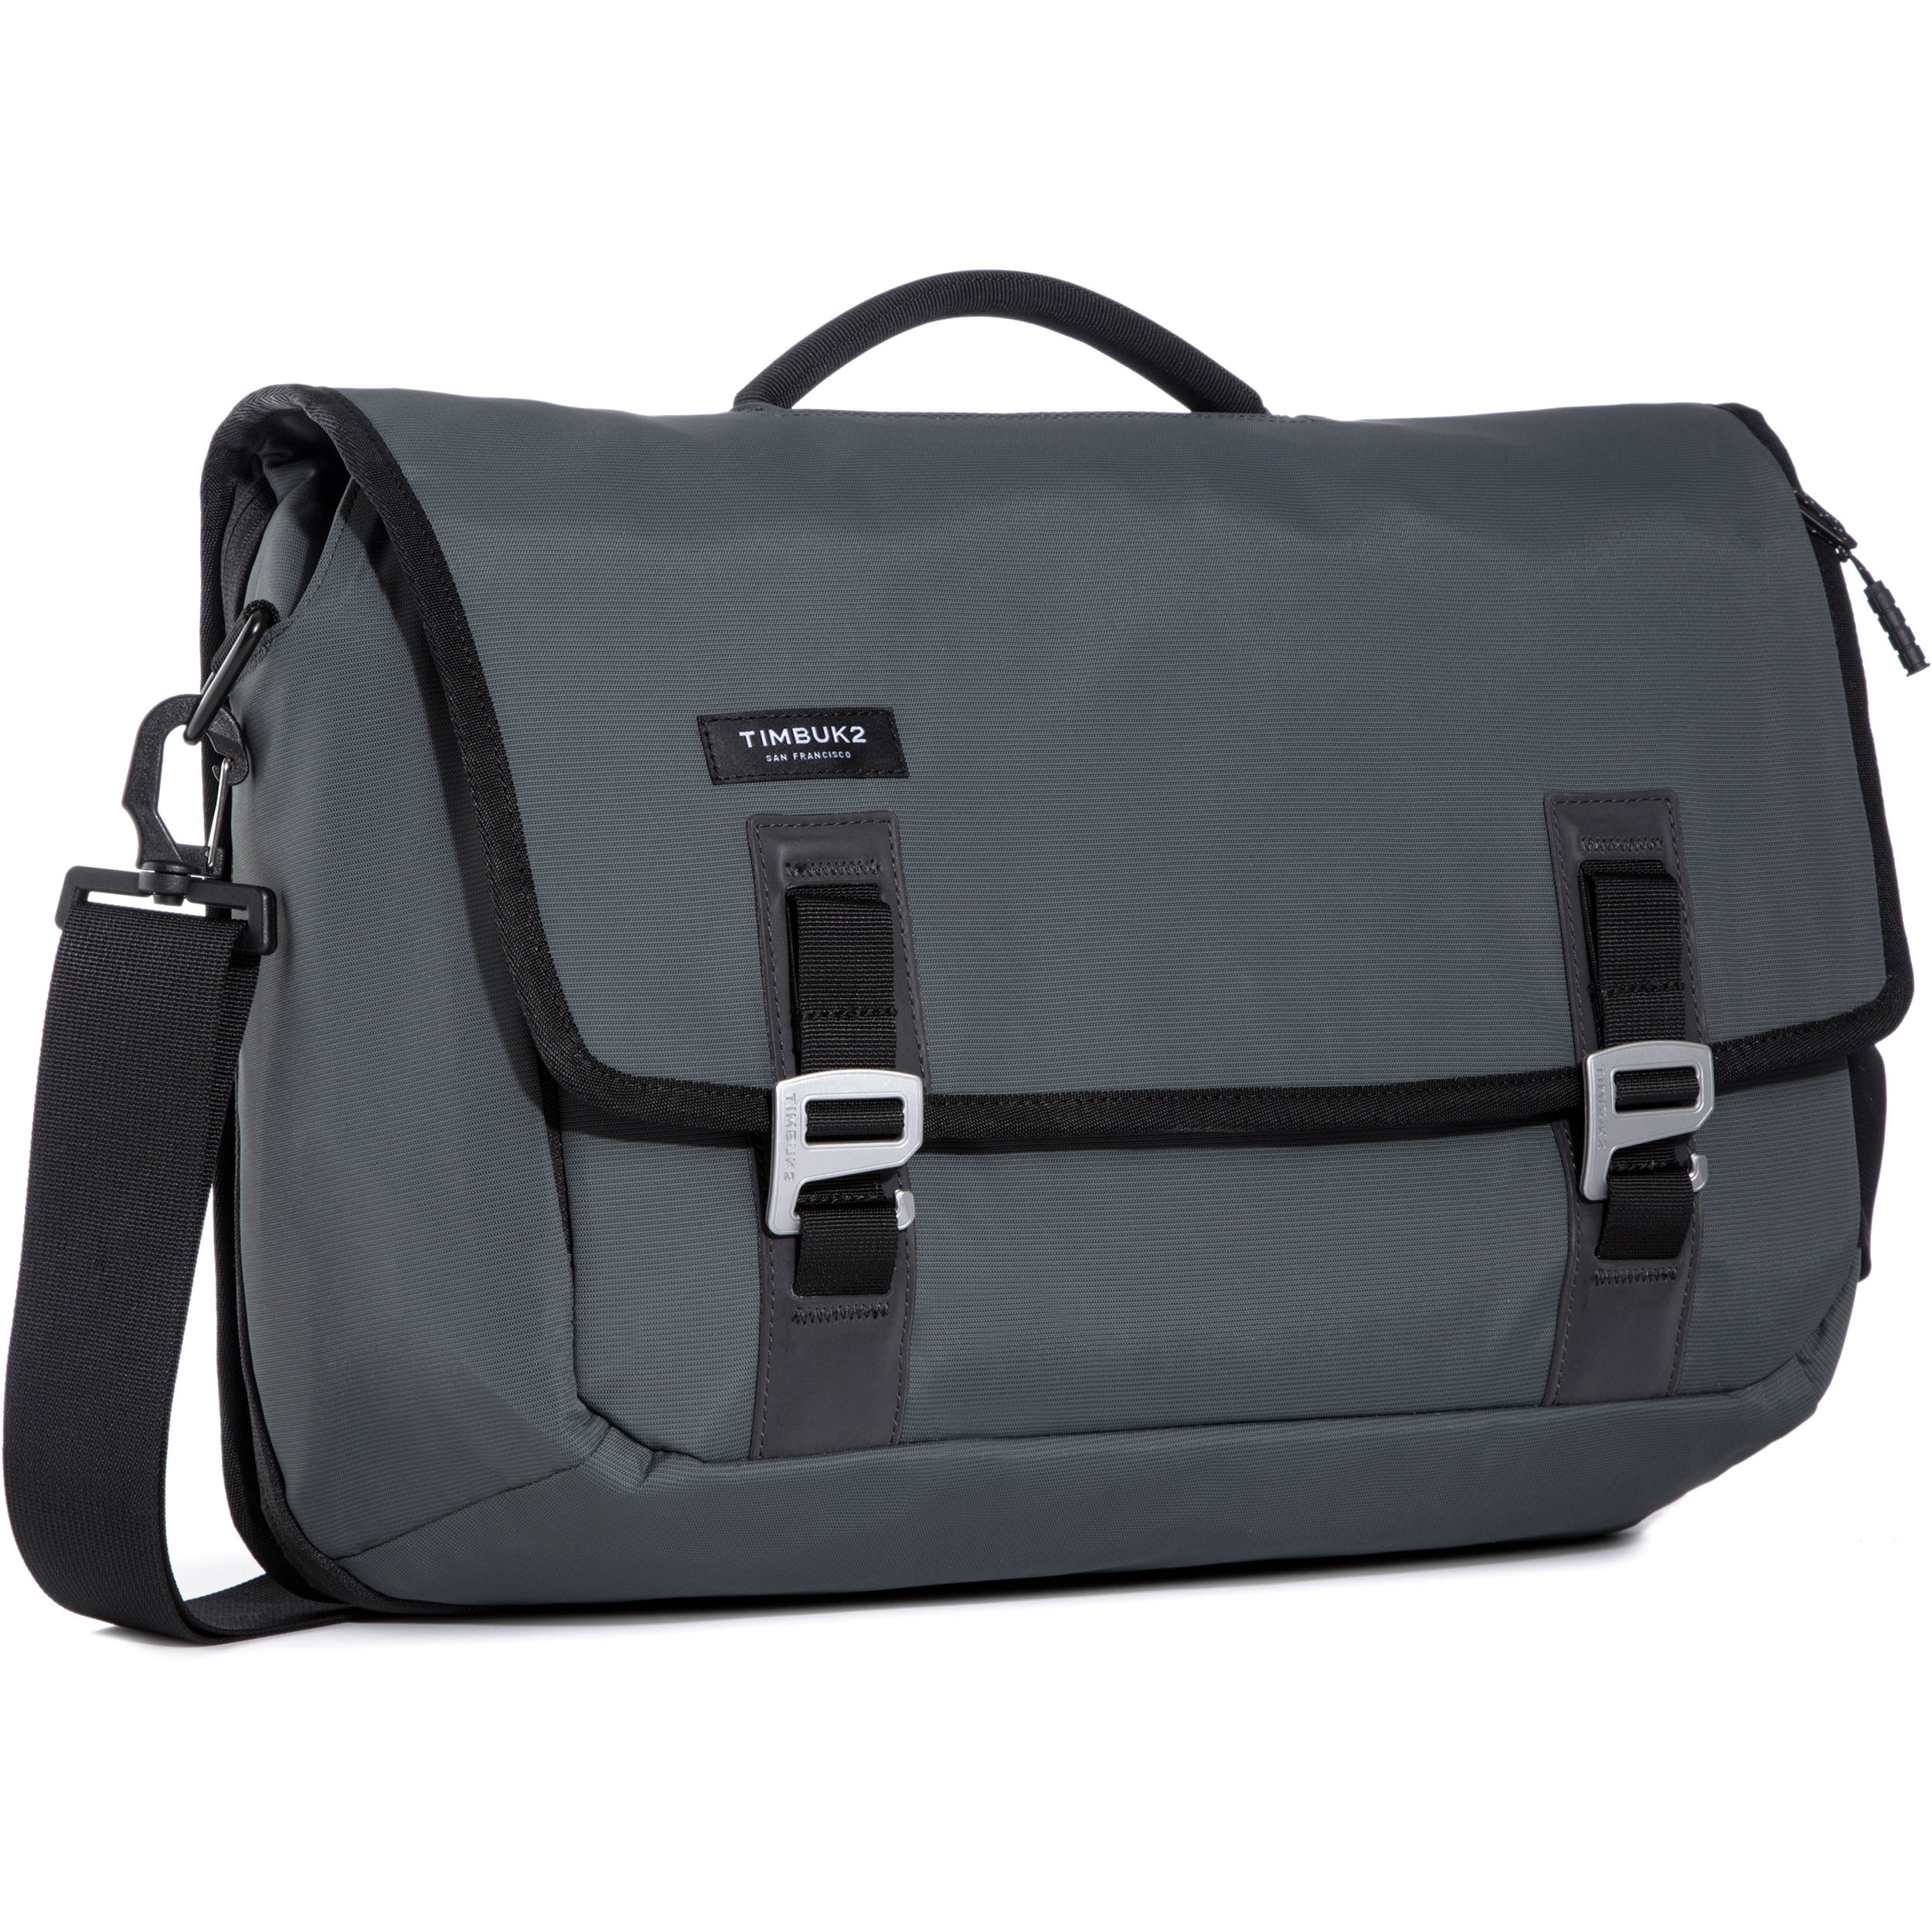 Timbuk2 Command Messenger Bag (Medium